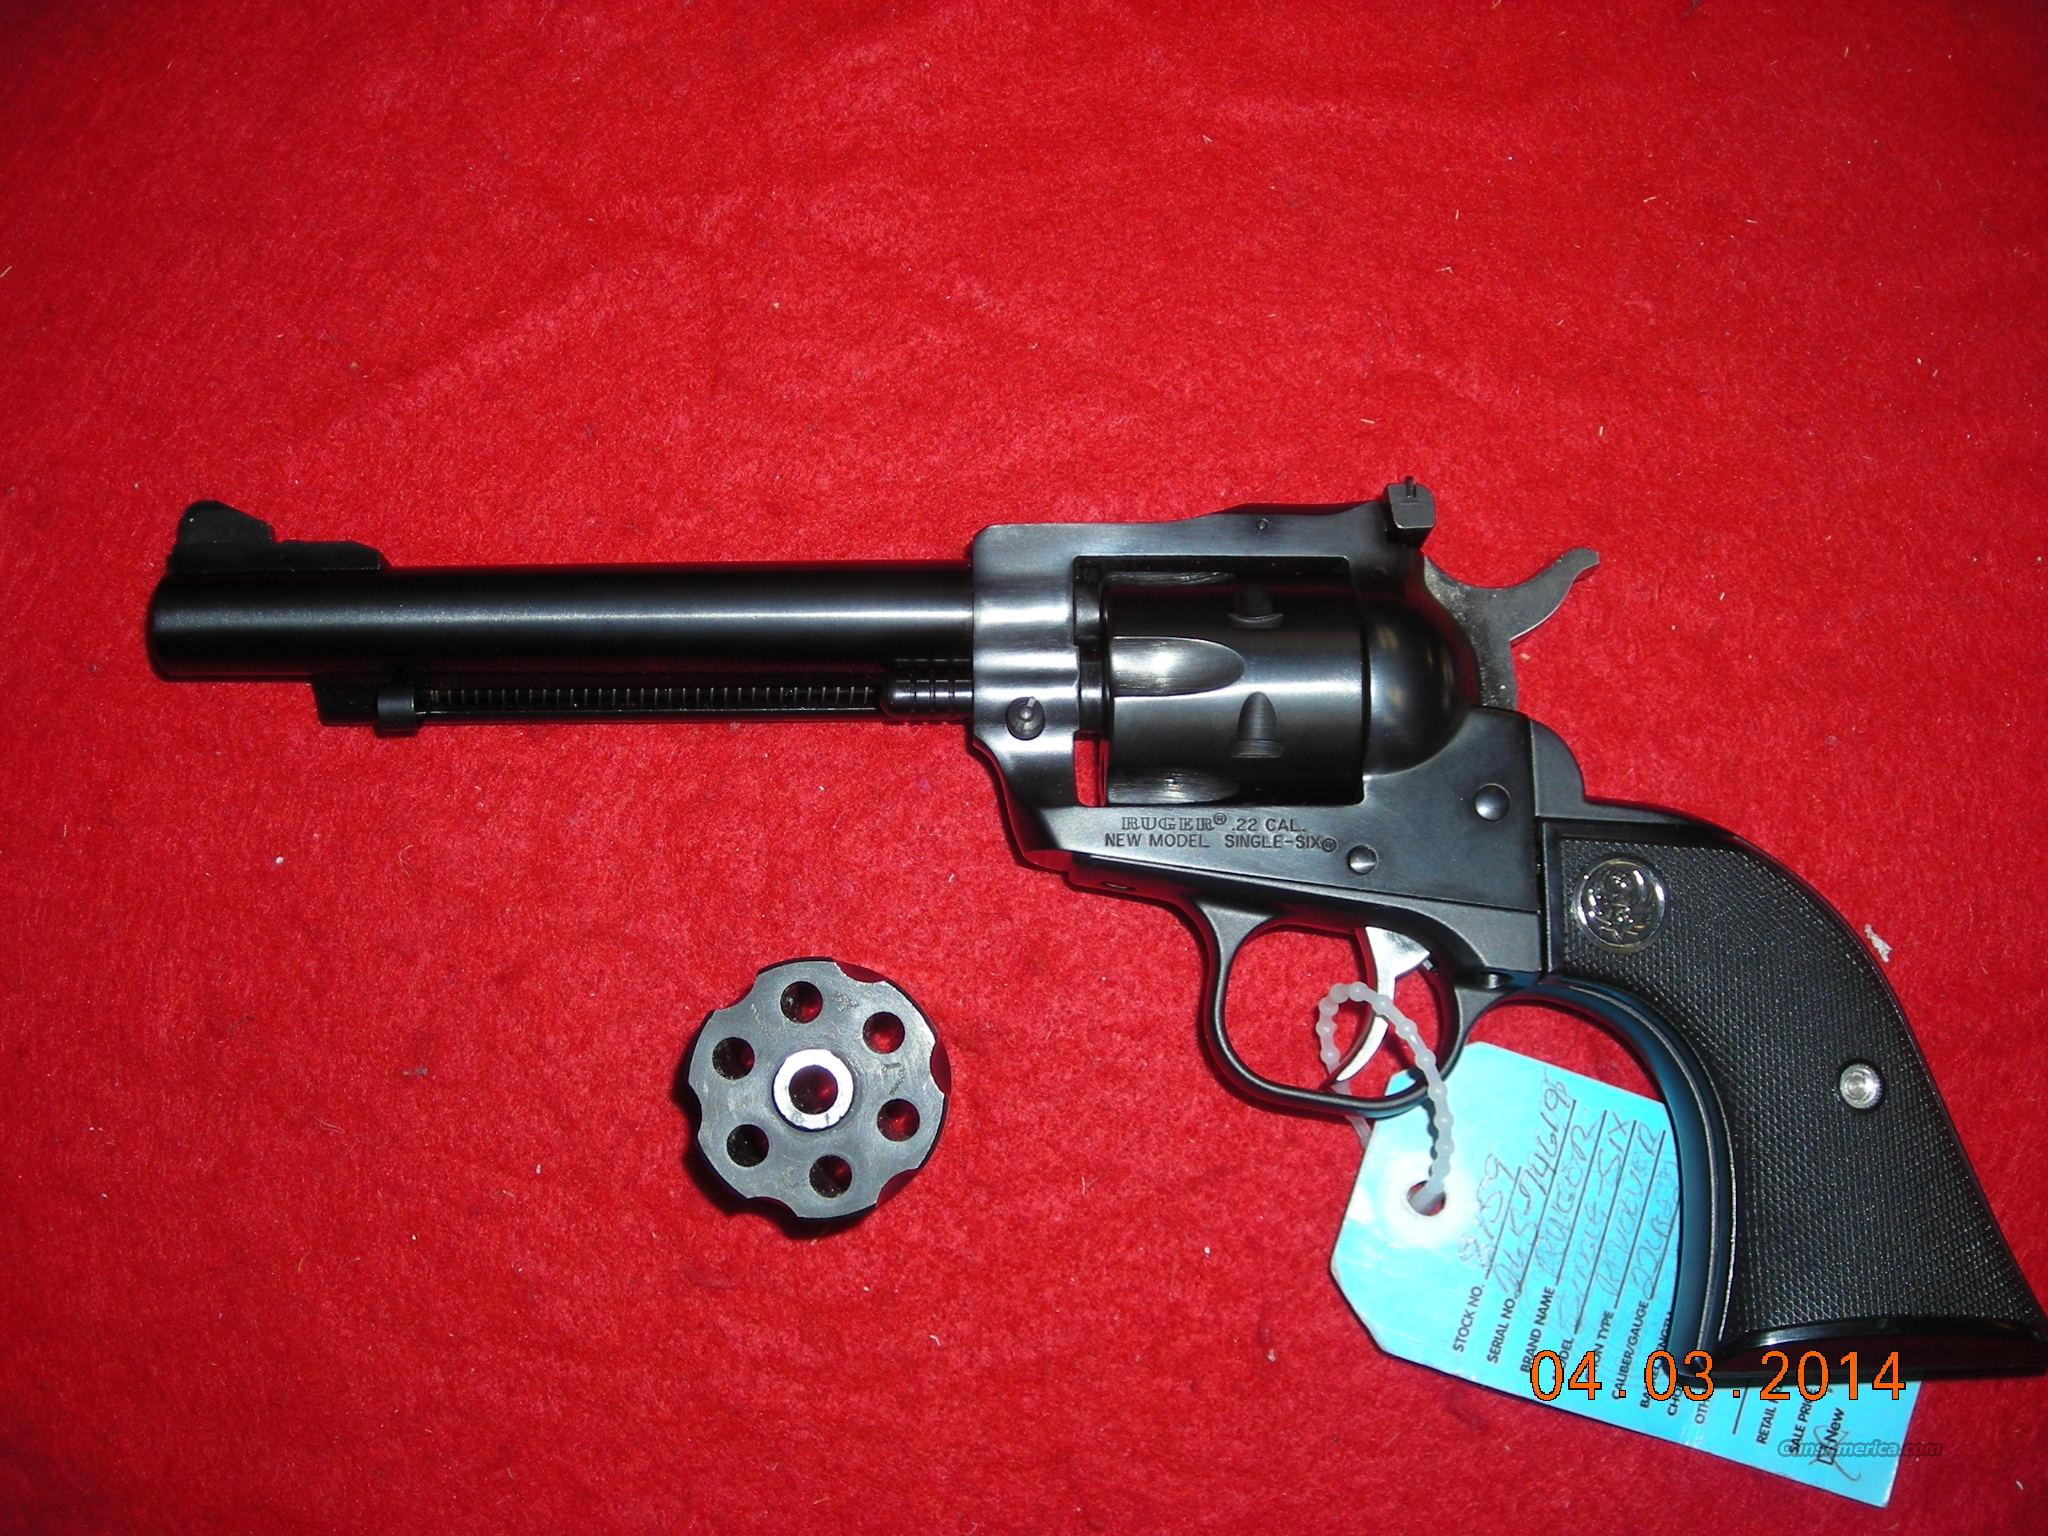 RUGER SINGLE SIX  22LR & 22MAG  Guns > Pistols > Ruger Single Action Revolvers > Single Six Type